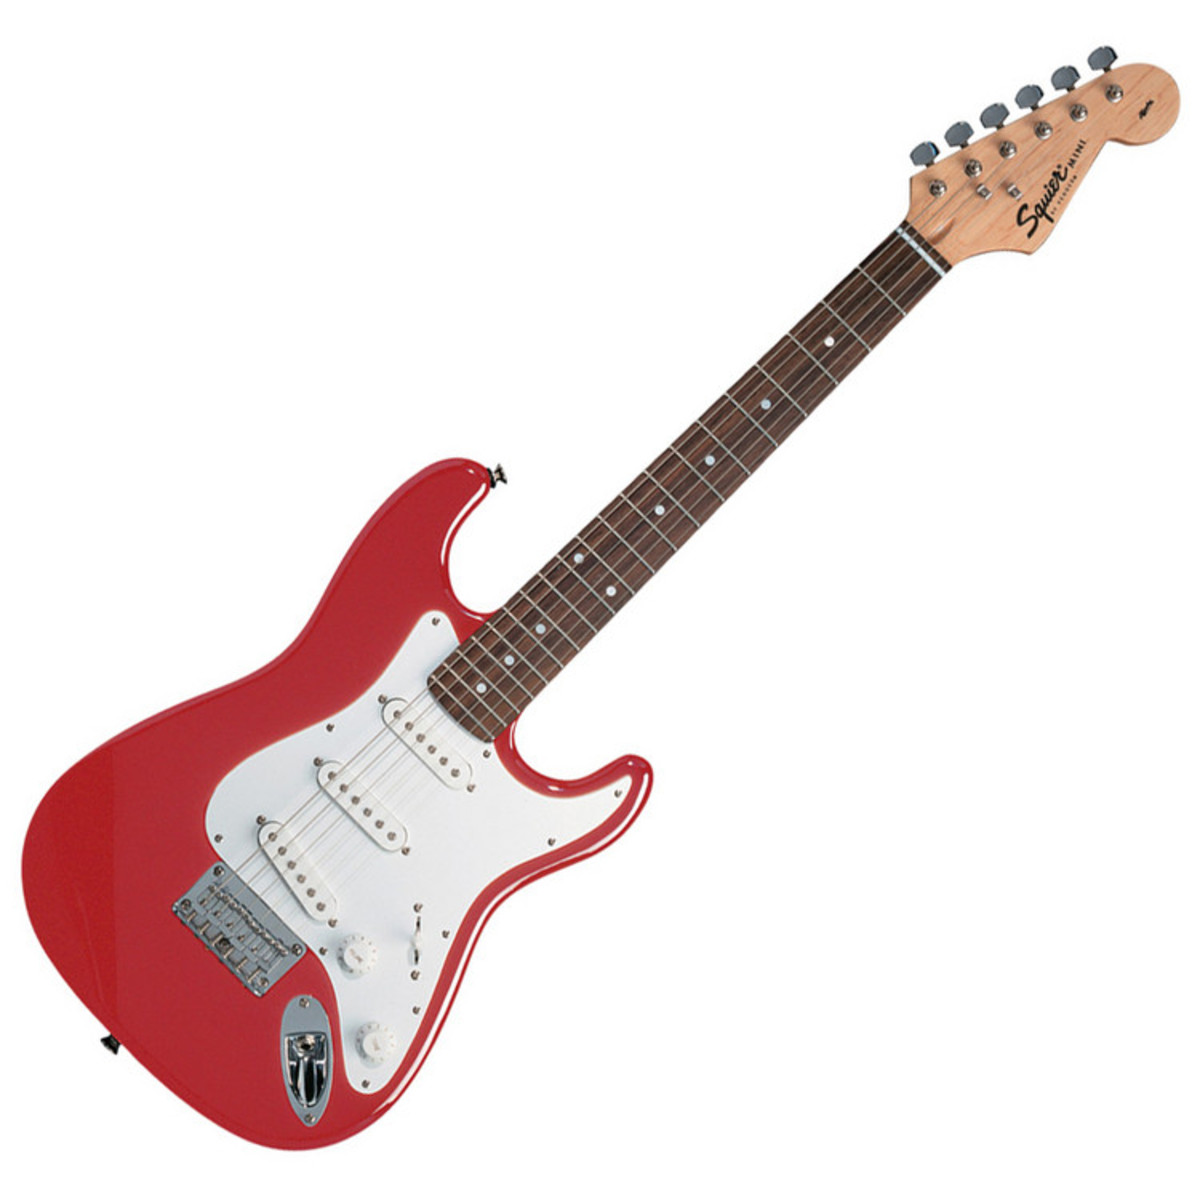 squier by fender guitare stratocaster mini 3 4 taille. Black Bedroom Furniture Sets. Home Design Ideas